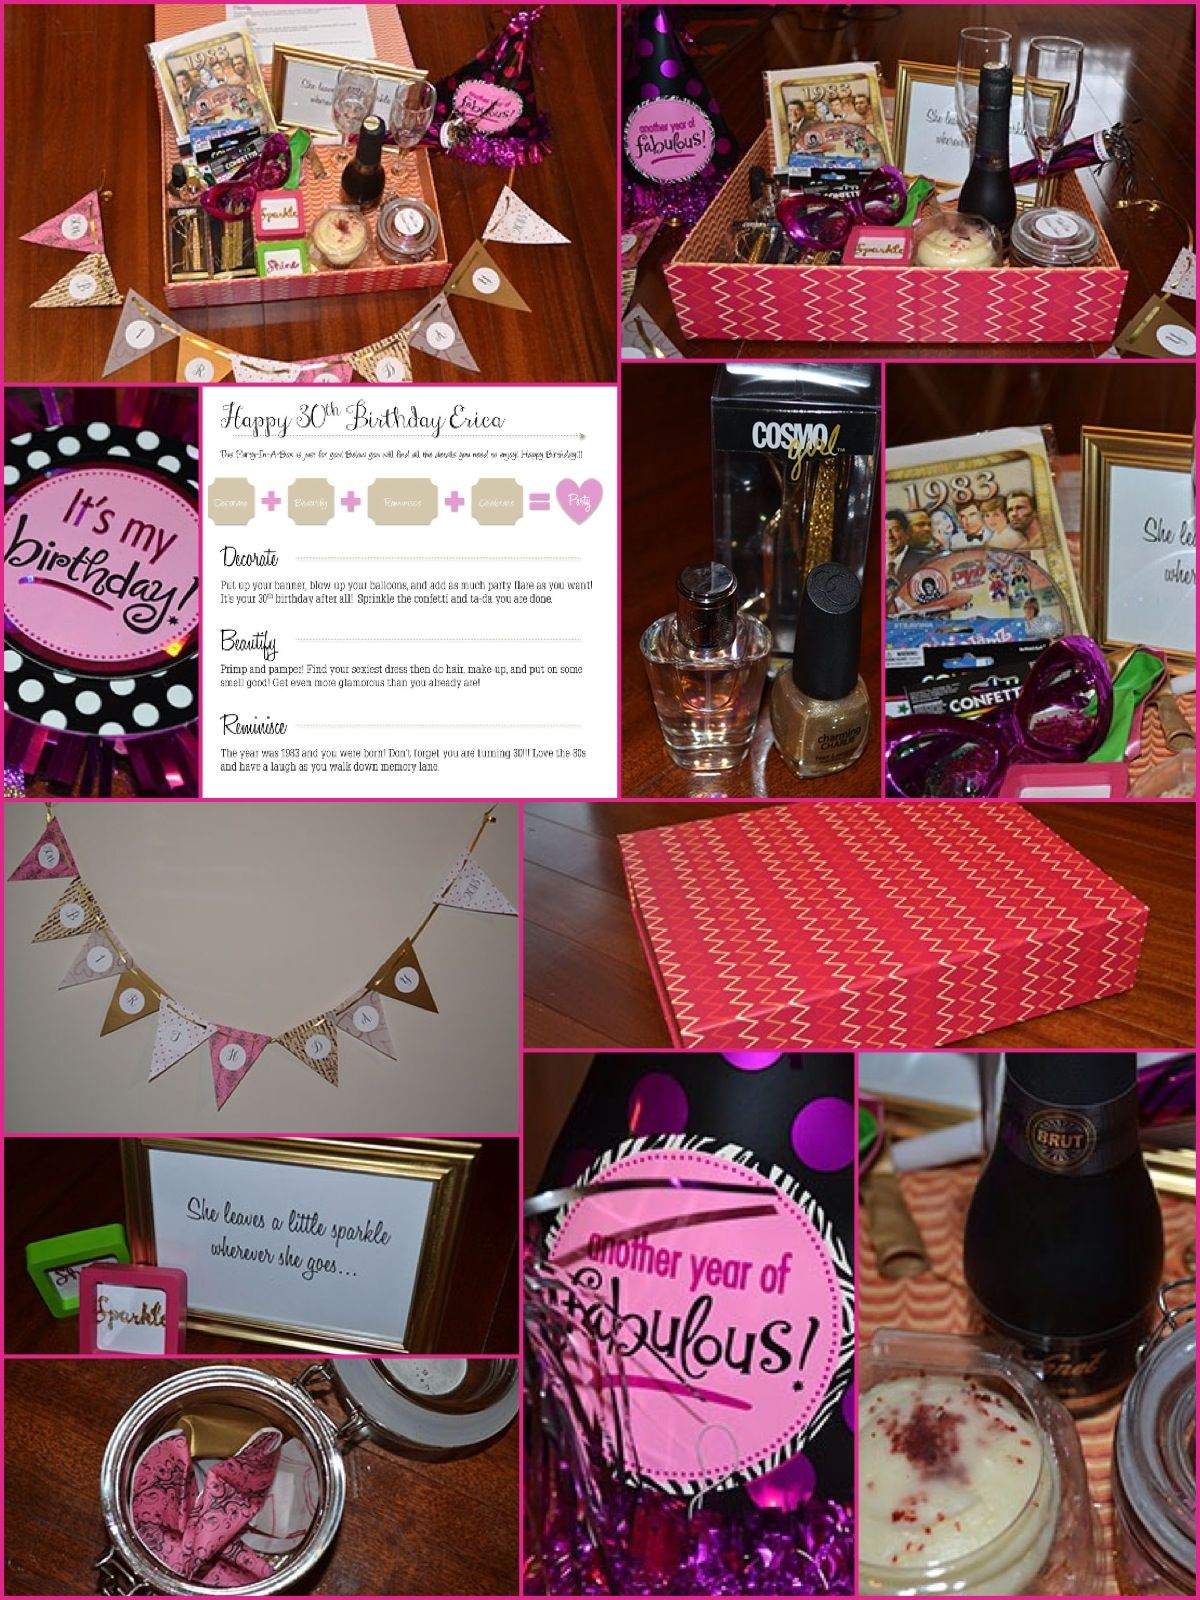 Party in a box! 30th birthday gift idea for those far away